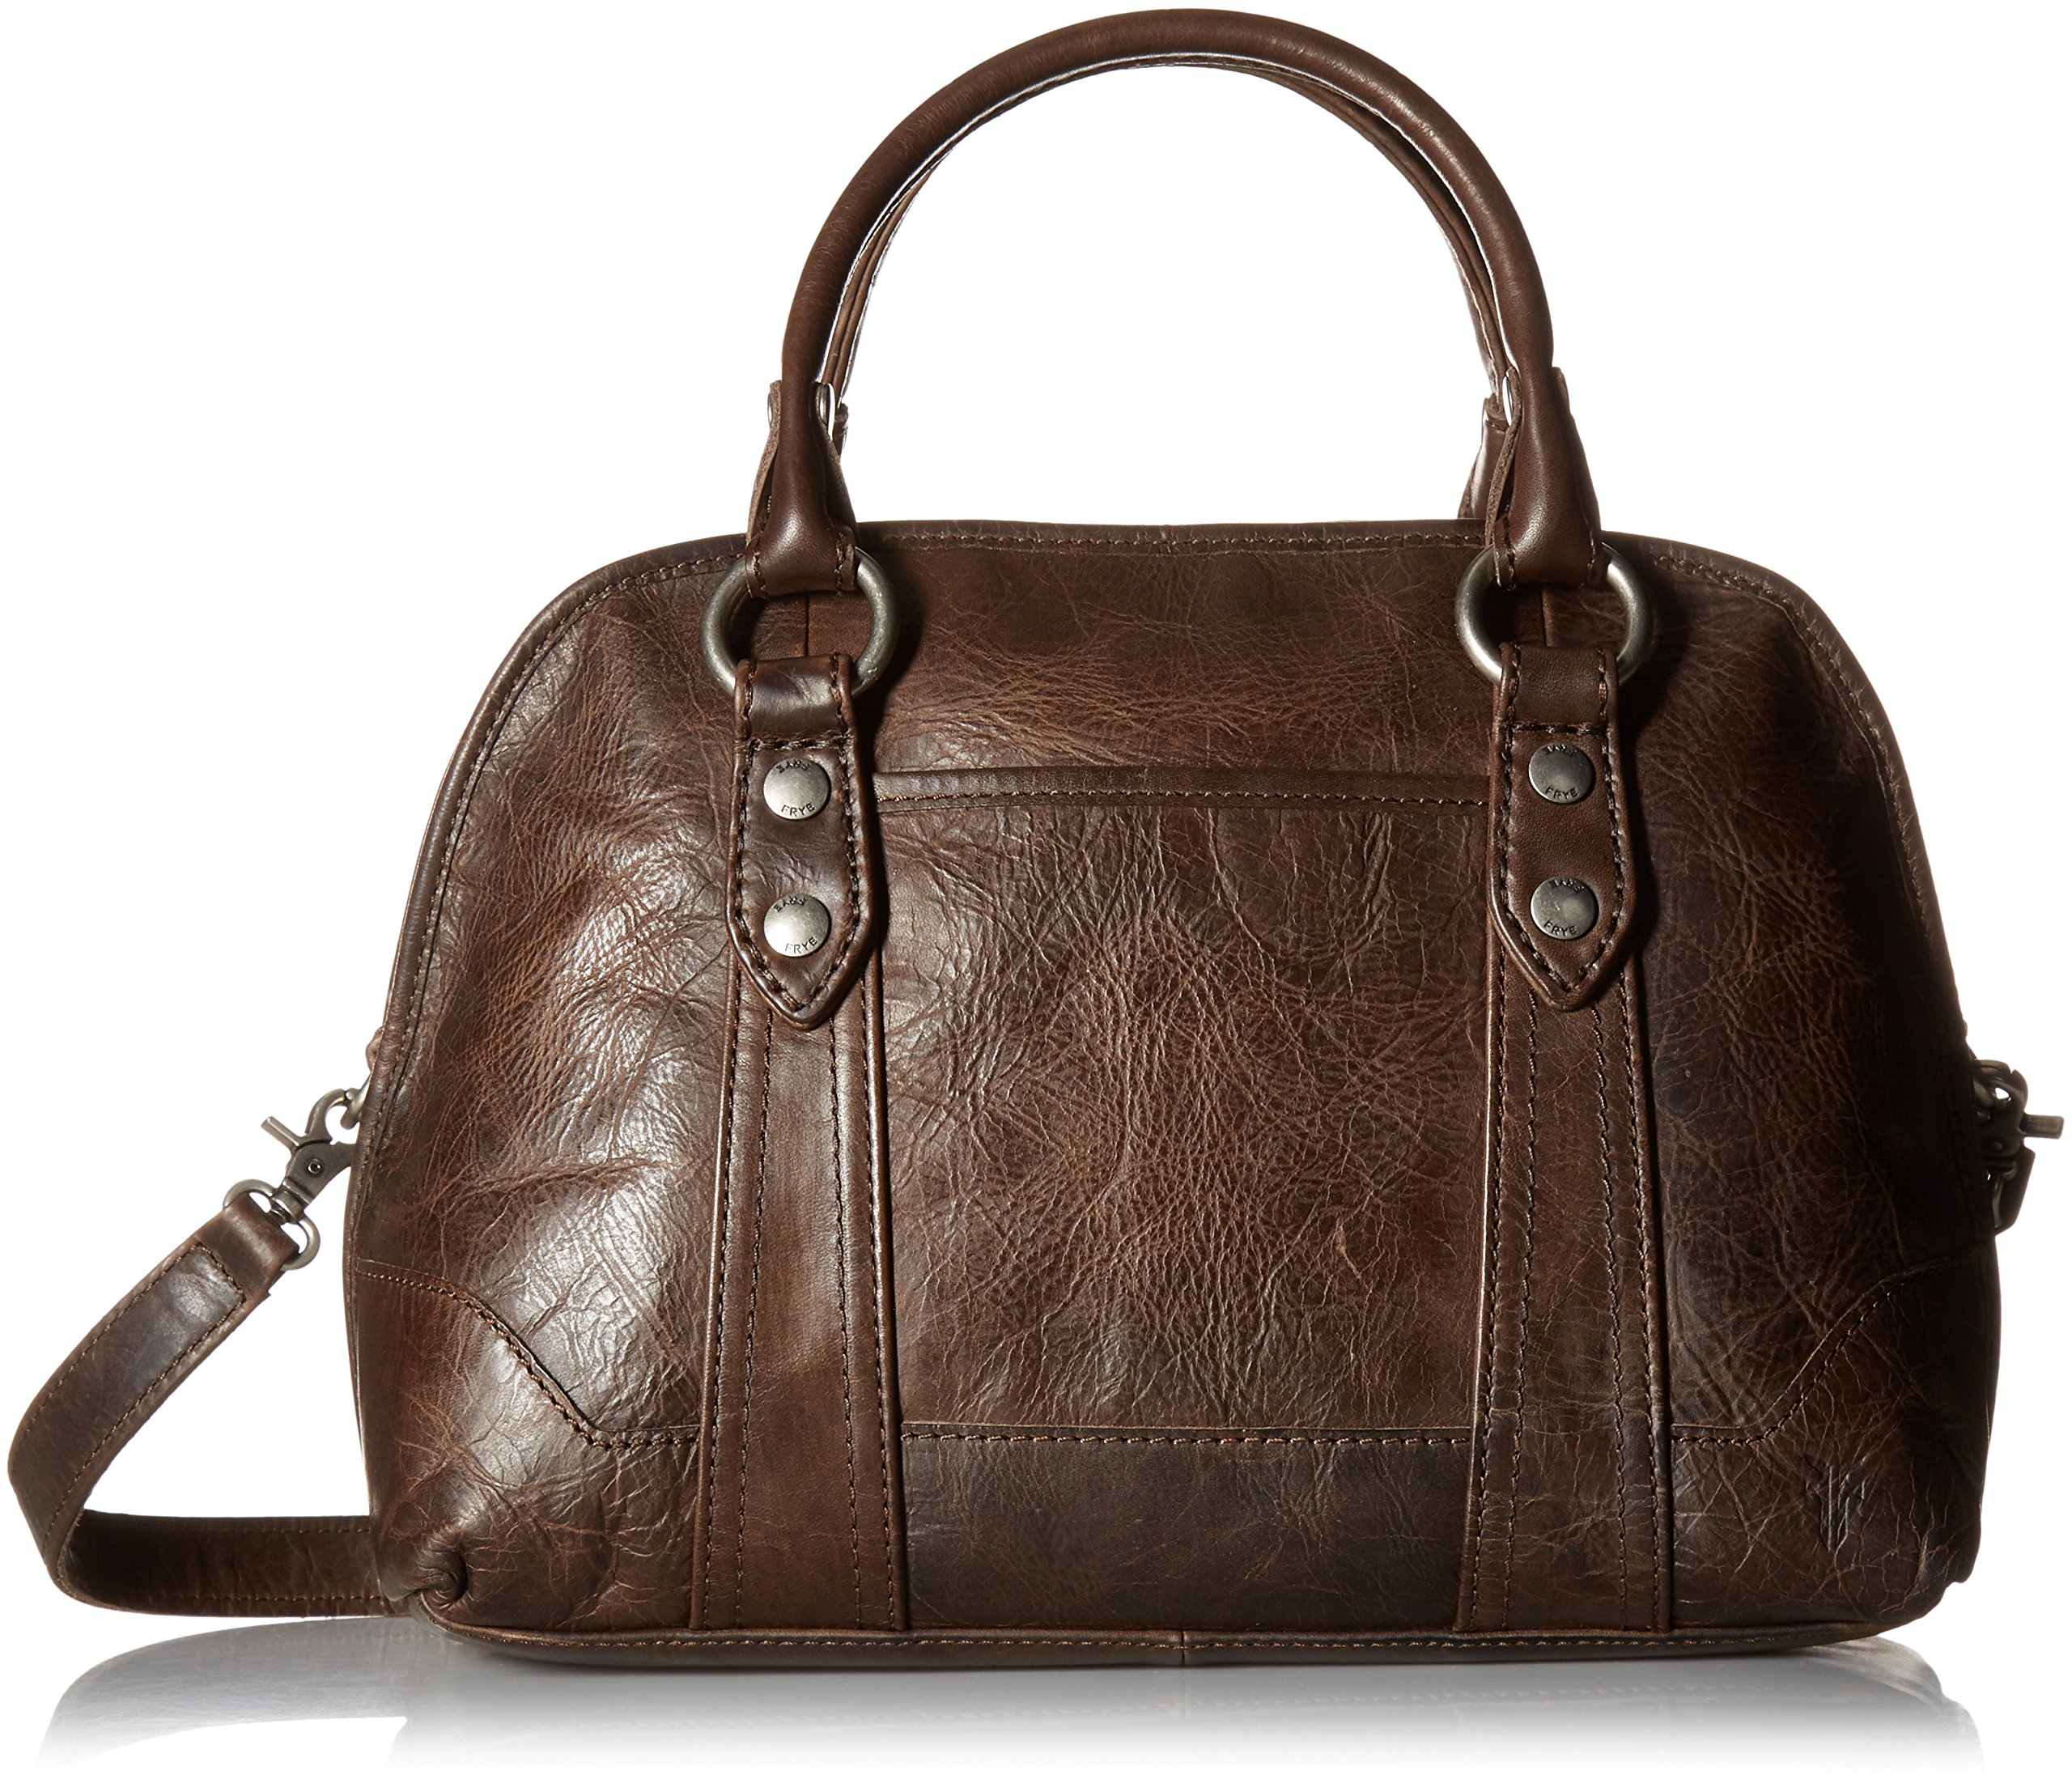 FRYE Melissa Domed Satchel Bag, Slate, One Size